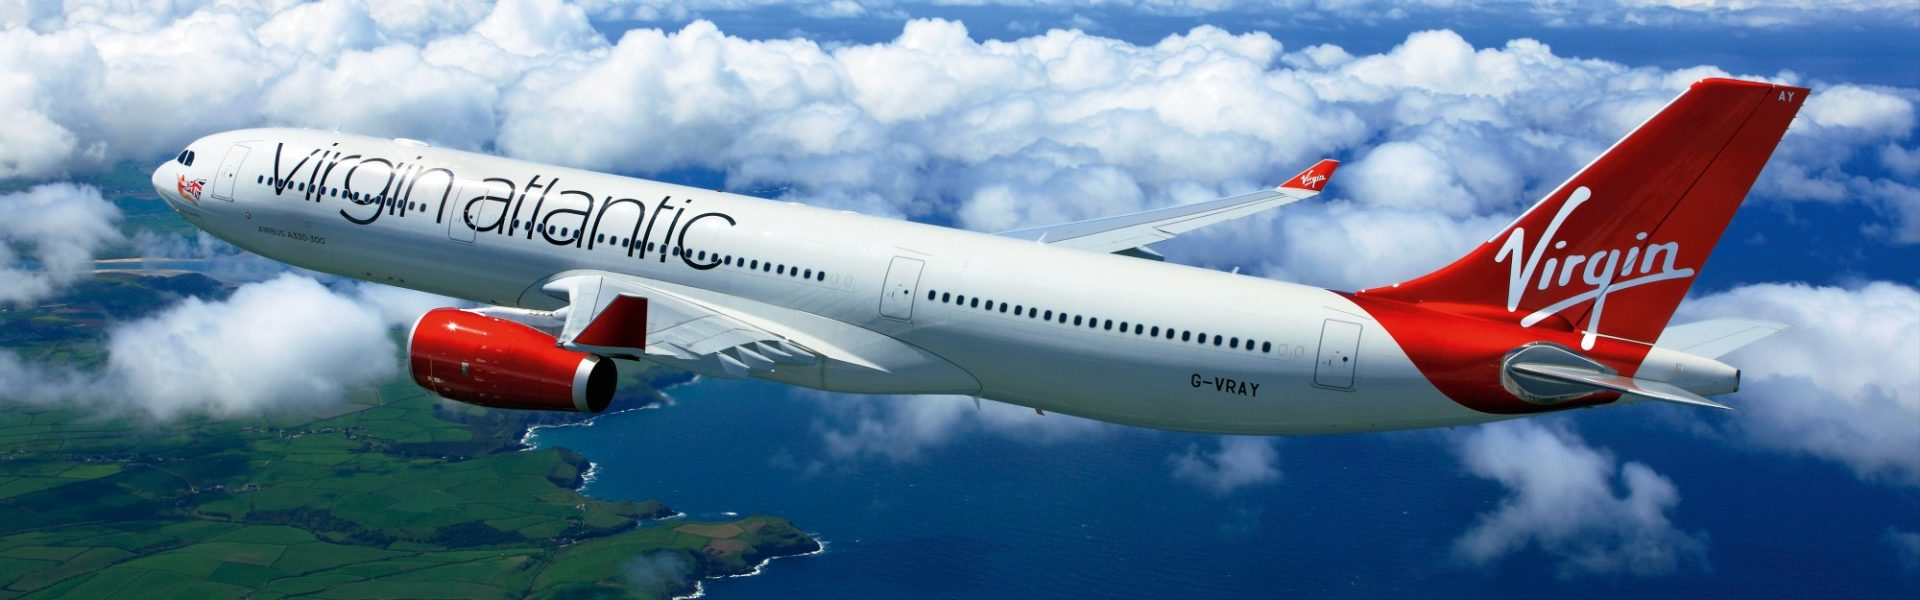 Ipovedenti: Virgin Atlantic lancia l'intrattenimento a bordo dedicato